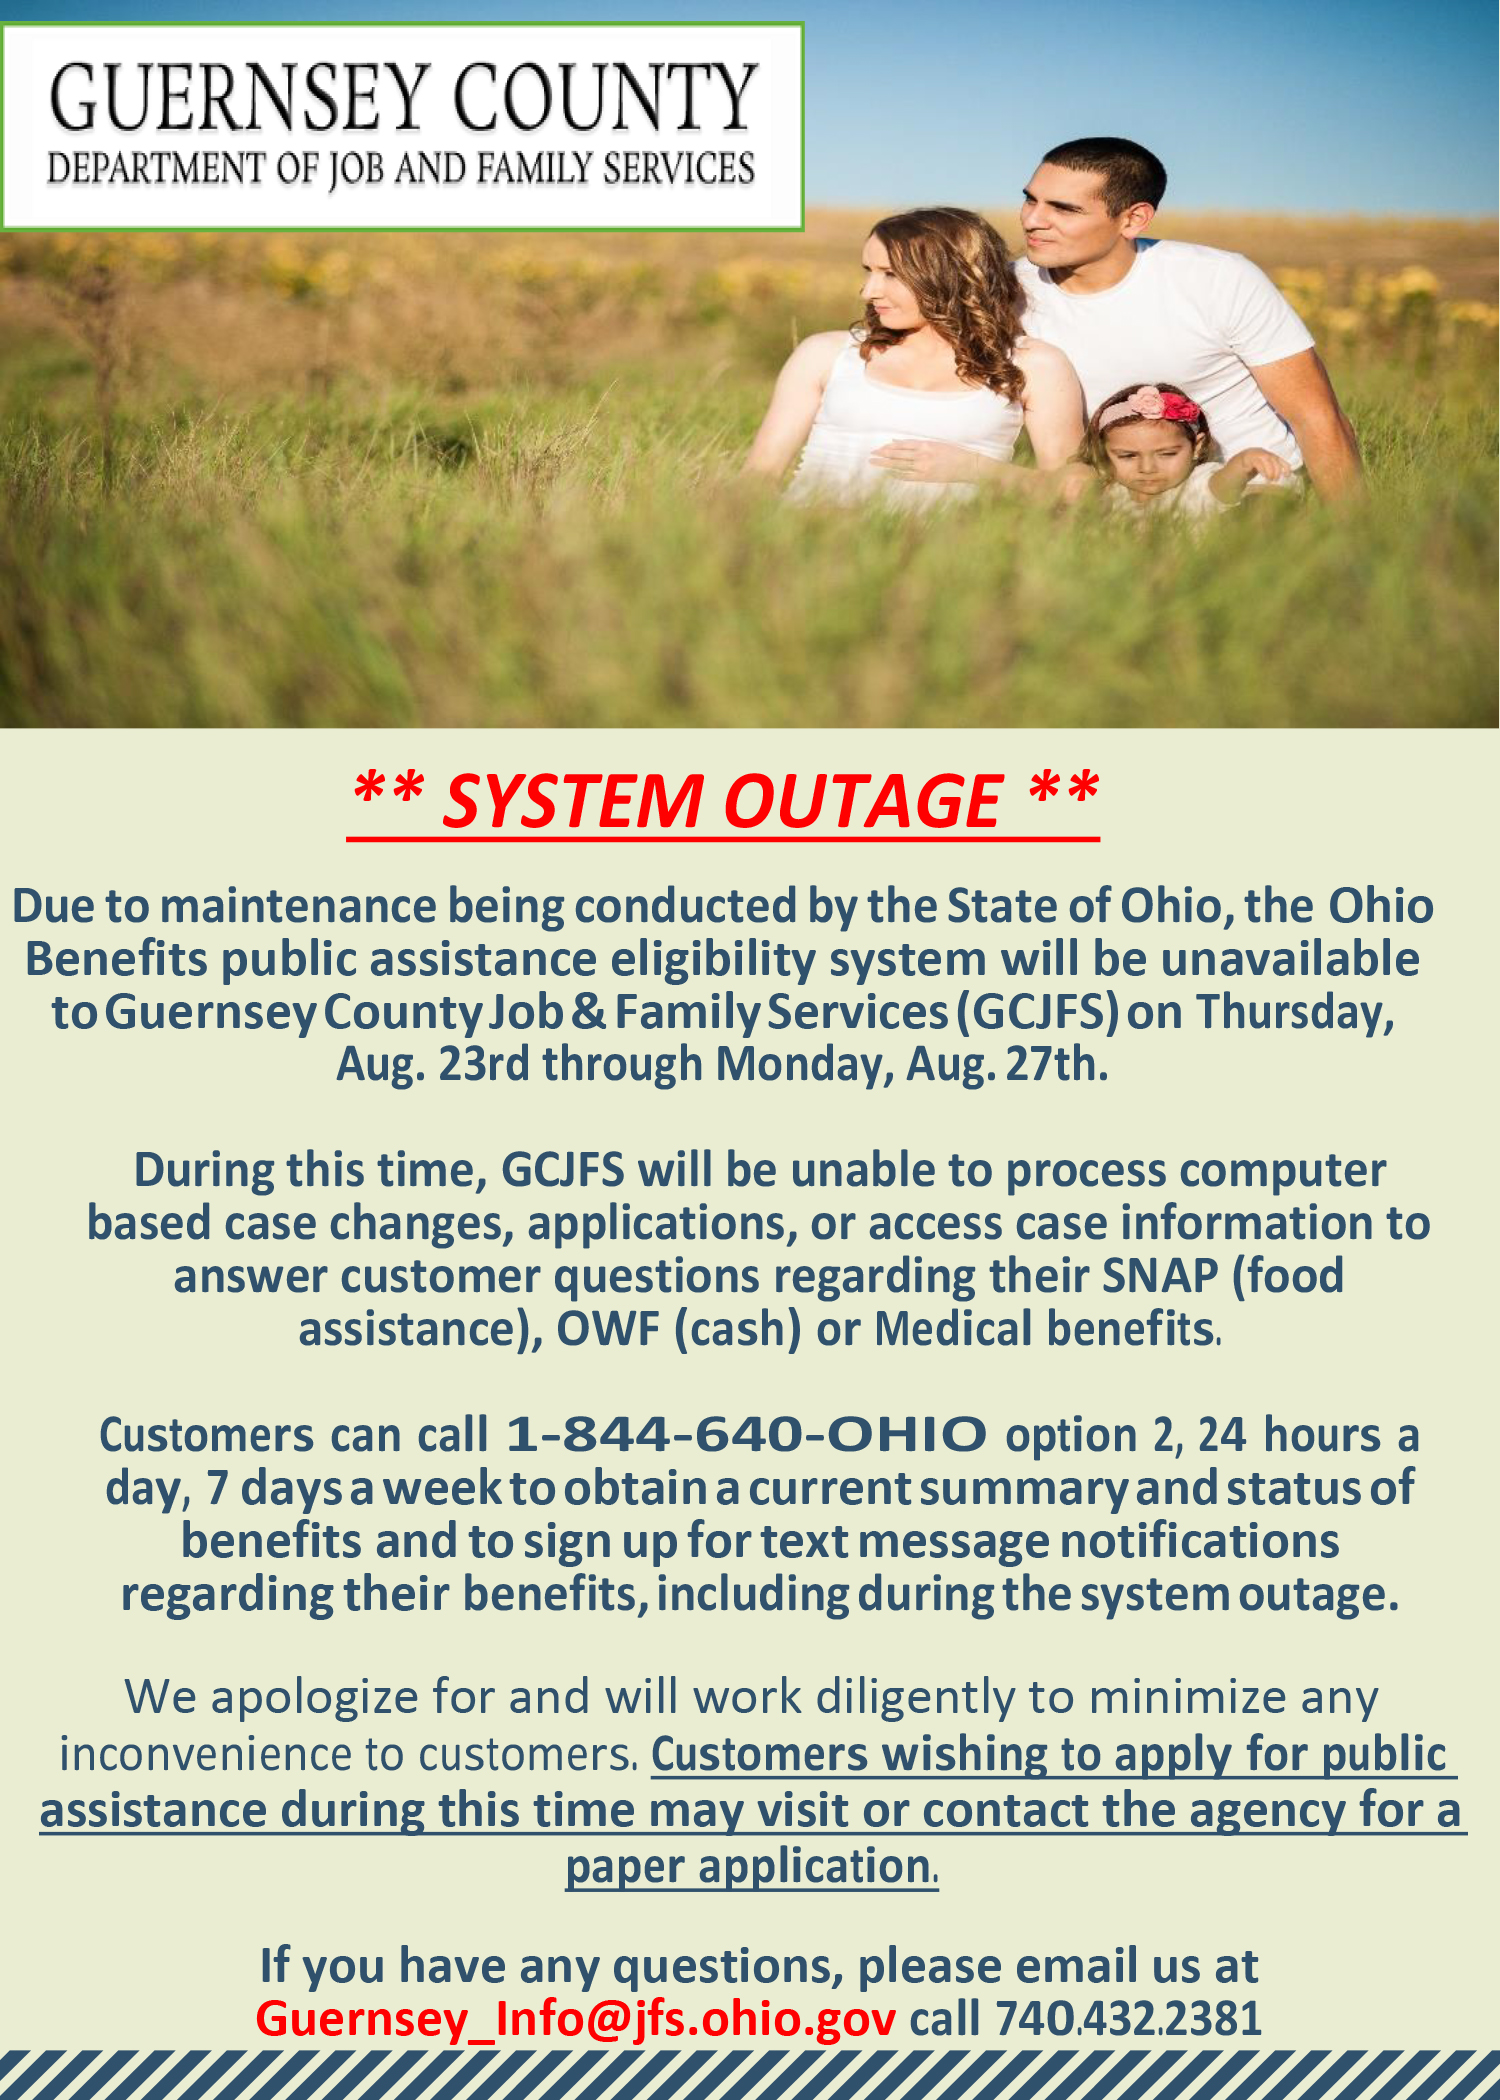 System Outage Alert Guernsey County